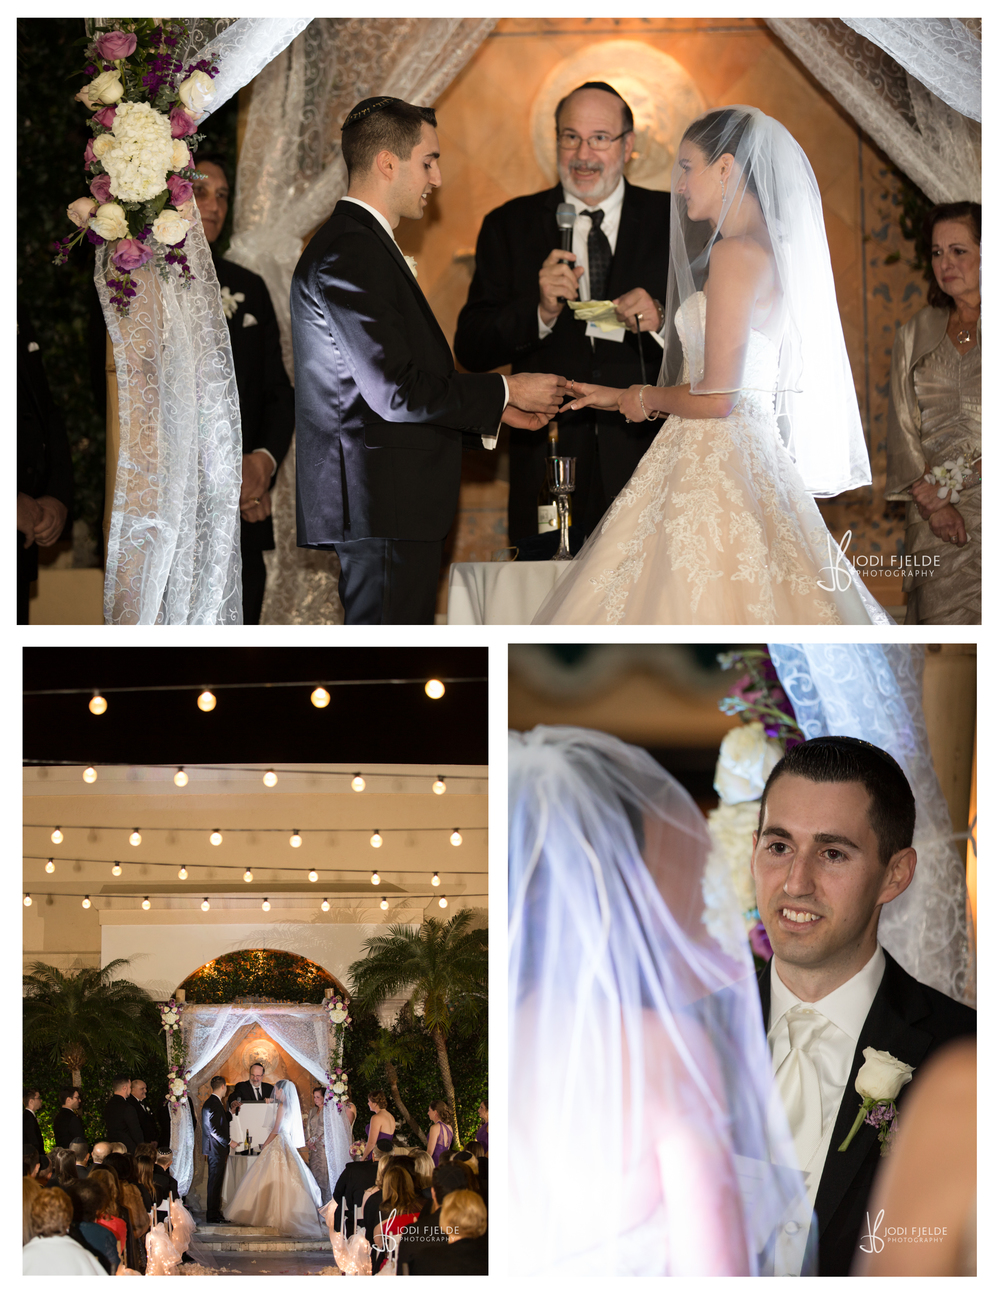 Benvenuto_Palm_Beach_Wedding_Jewish_Michelle & Jason_Jodi_Fjedle_Photography 39.jpg